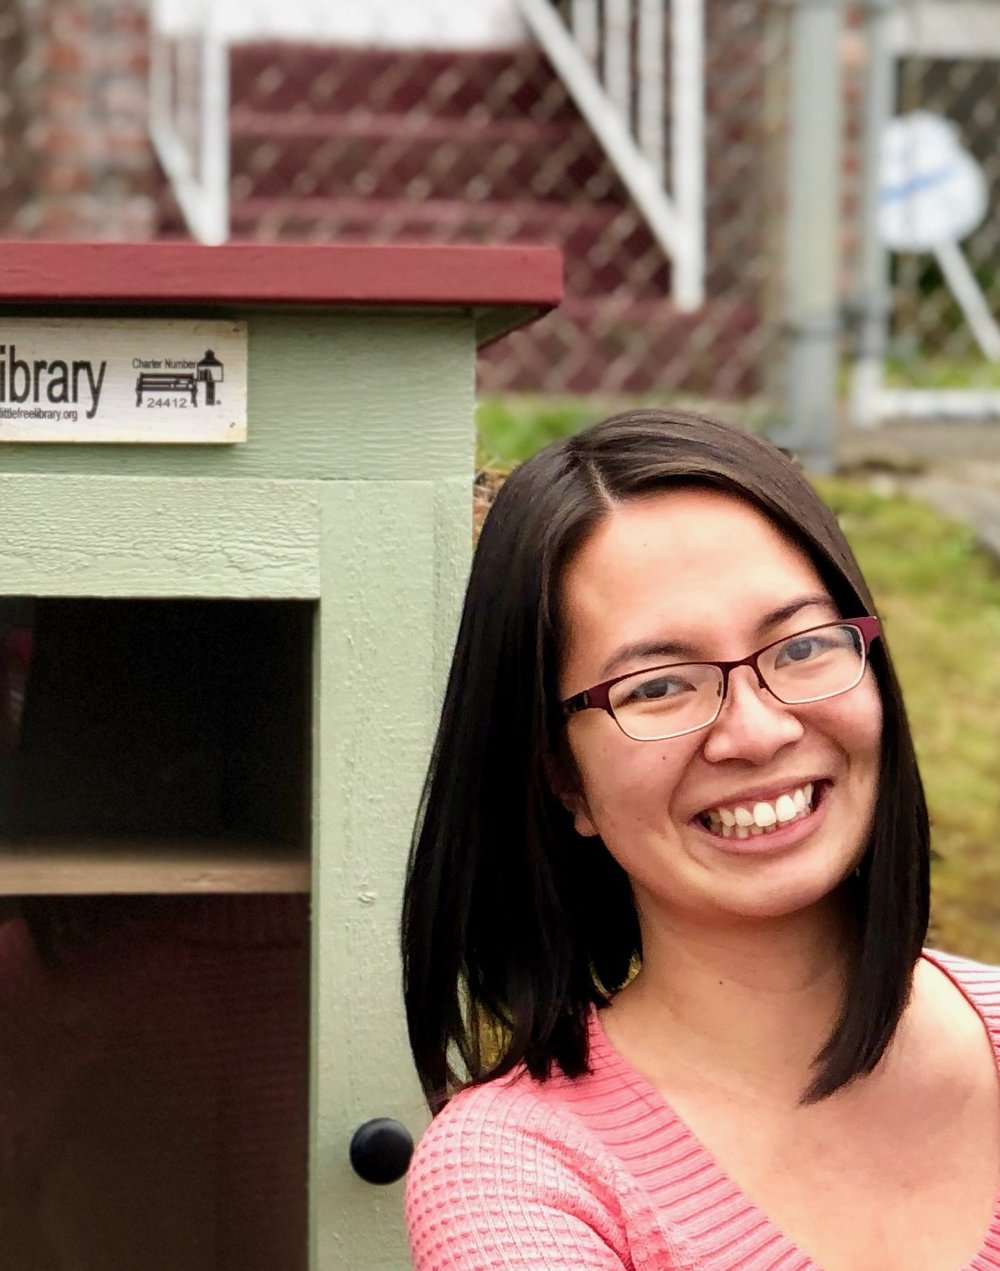 We're so grateful to Julia for sharing her thoughts and ideas about Little Free Libraries!